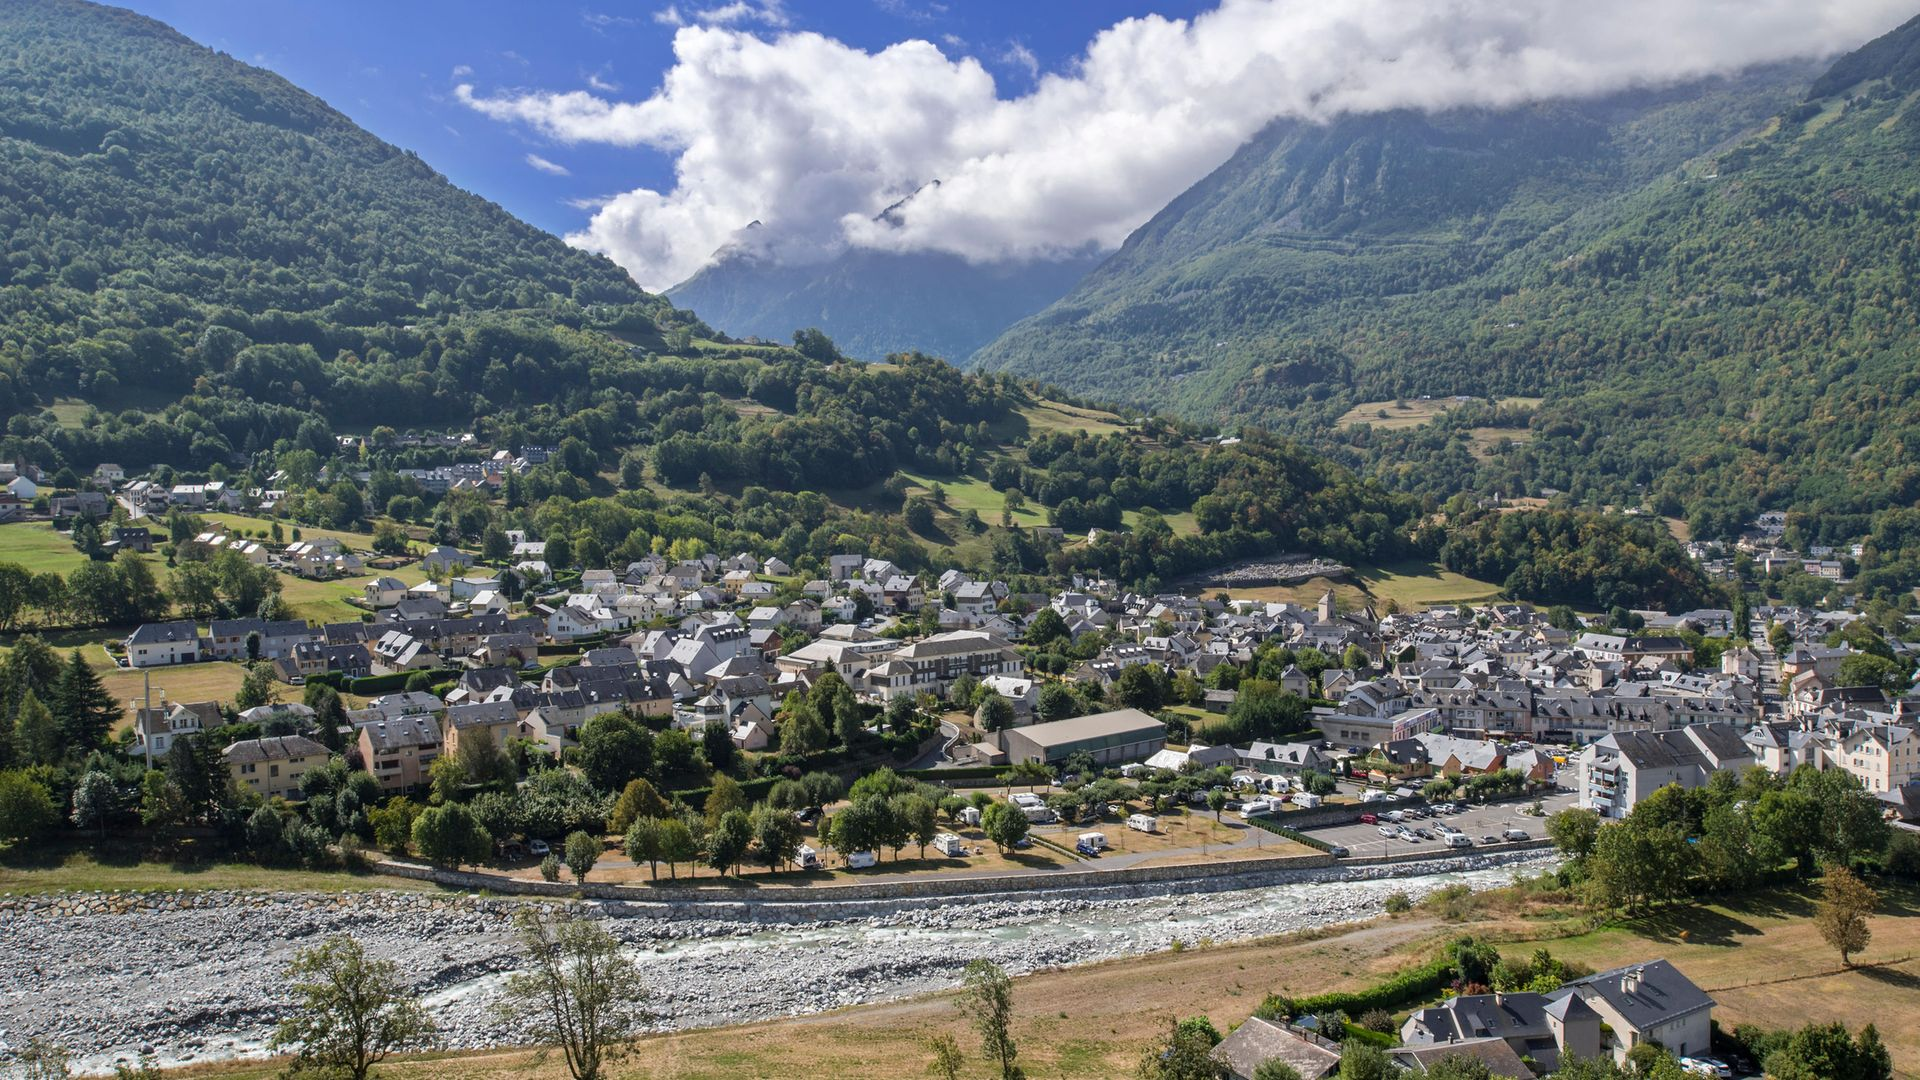 The village of Luz-Saint-Sauveur in the Hautes-Pyrenees, France; People Like Them is set in a similar mountain community - Credit: Universal Images Group via Getty